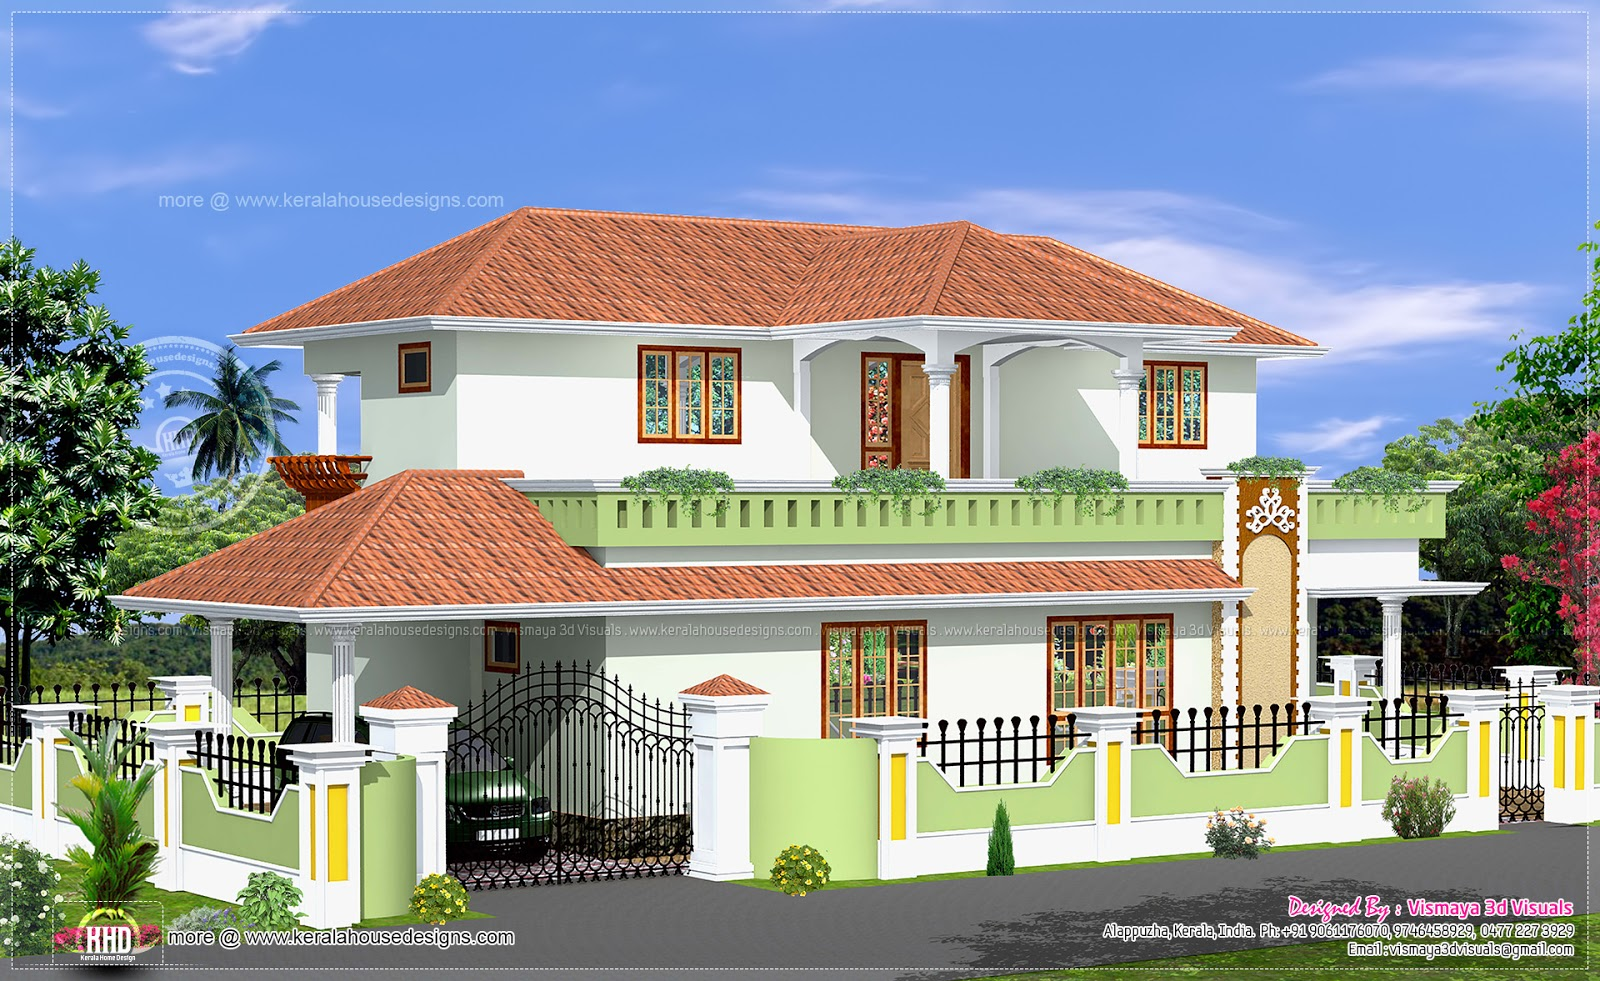 Simple 4 bed room Kerala style house